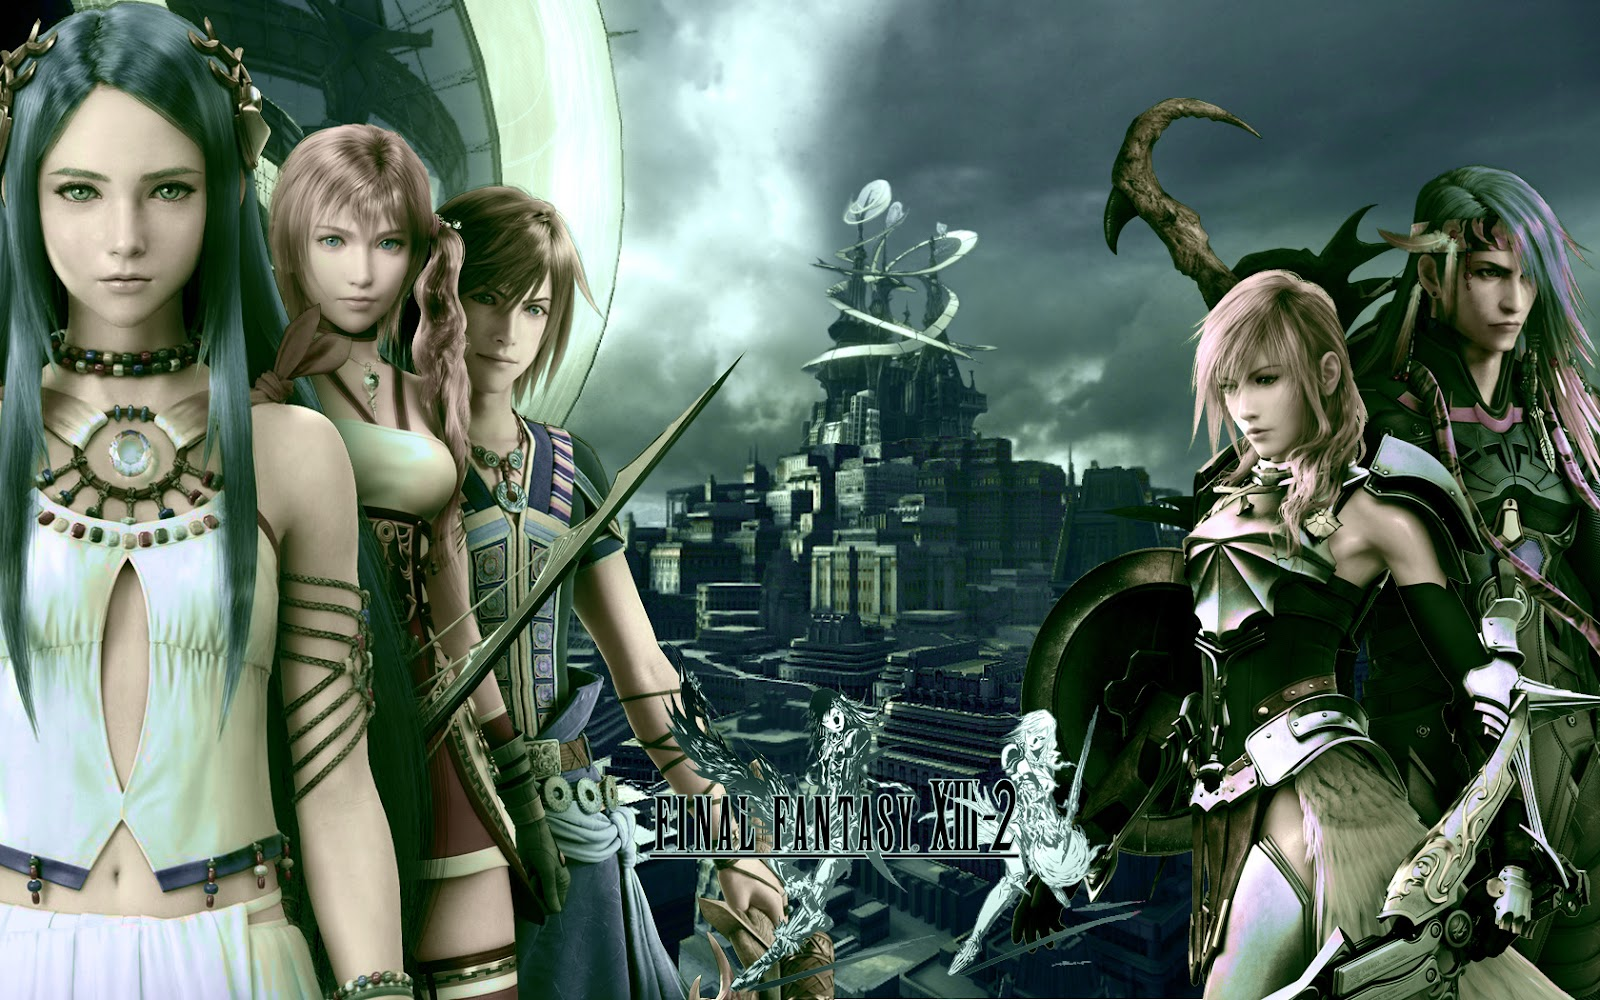 final fantasy xiii-final fantasy xiii-2-lightning-noel kreiss-serahFinal Fantasy Serah And Lightning